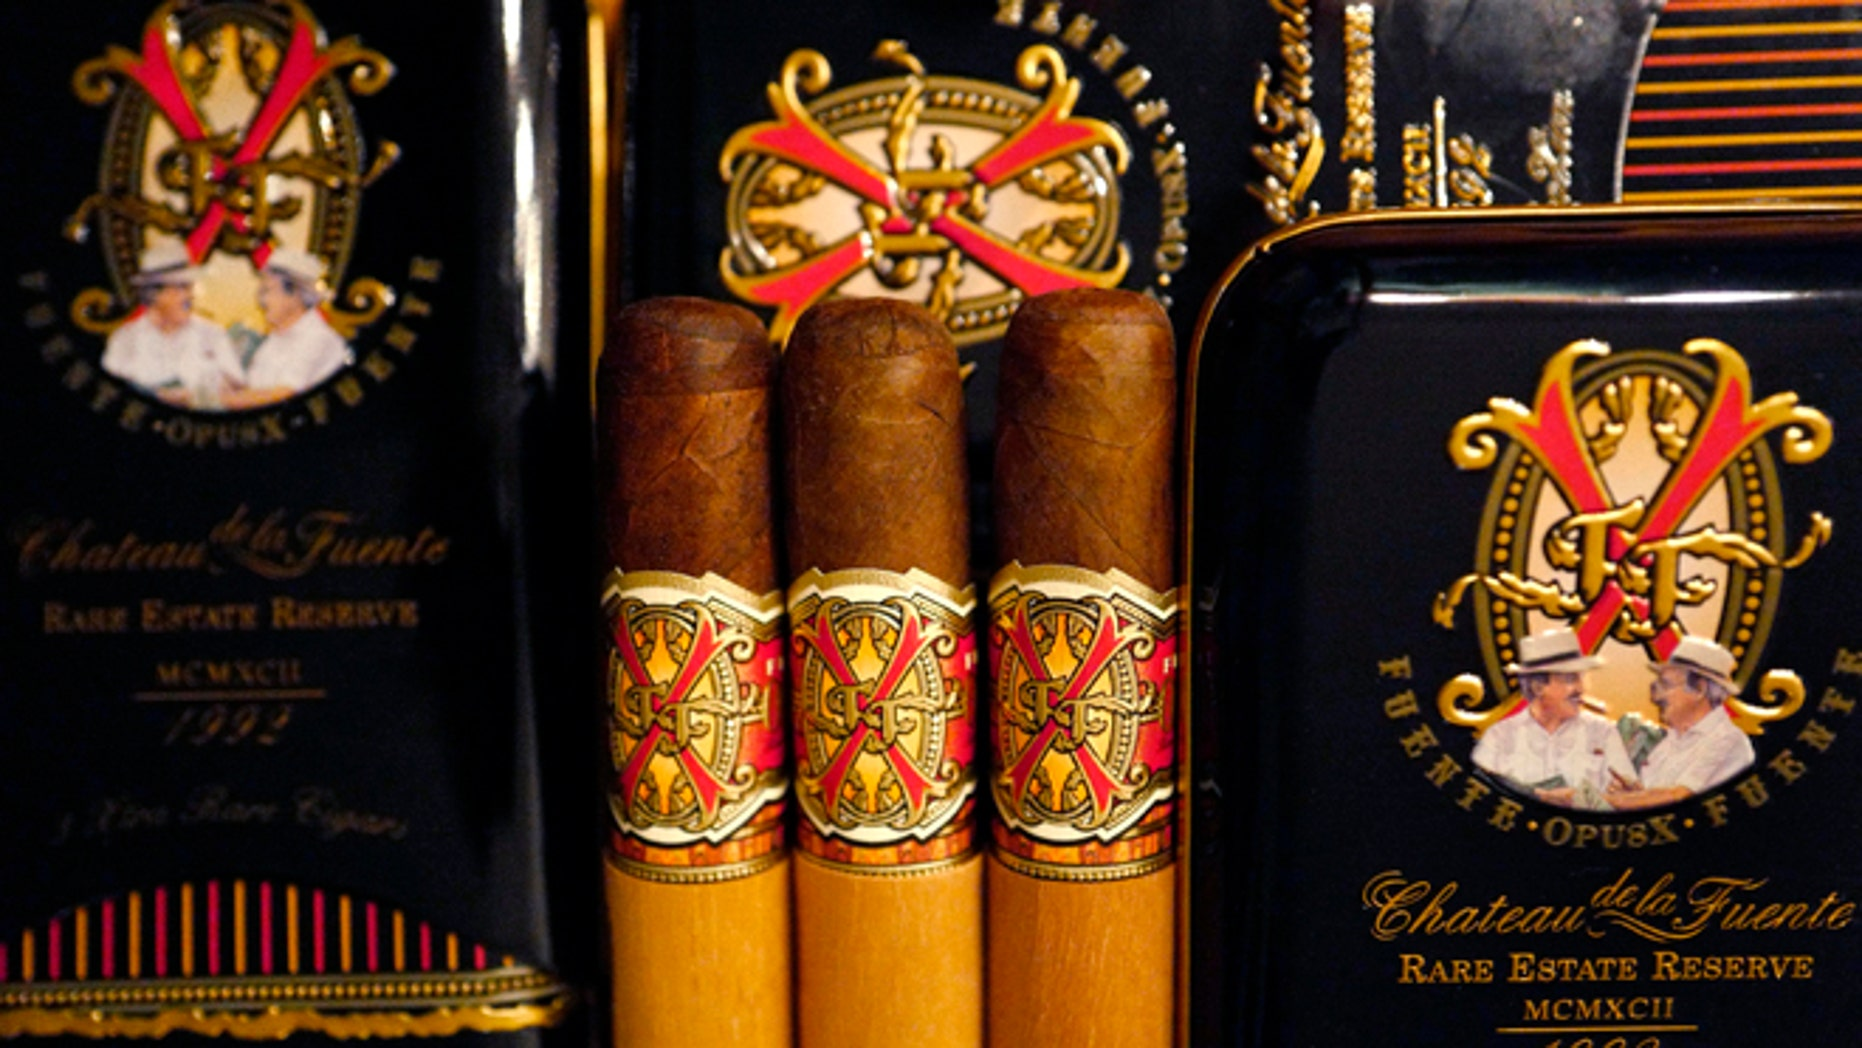 """A selection of rare """"Opus X"""" cigars made in the Domenican Republic by Arturo Fuente are on display at the duty free shop of Atatuerk airport in Istanbul, Turkey, March 25, 2016.    REUTERS/Kai Pfaffenbach  - RTSCN6I"""